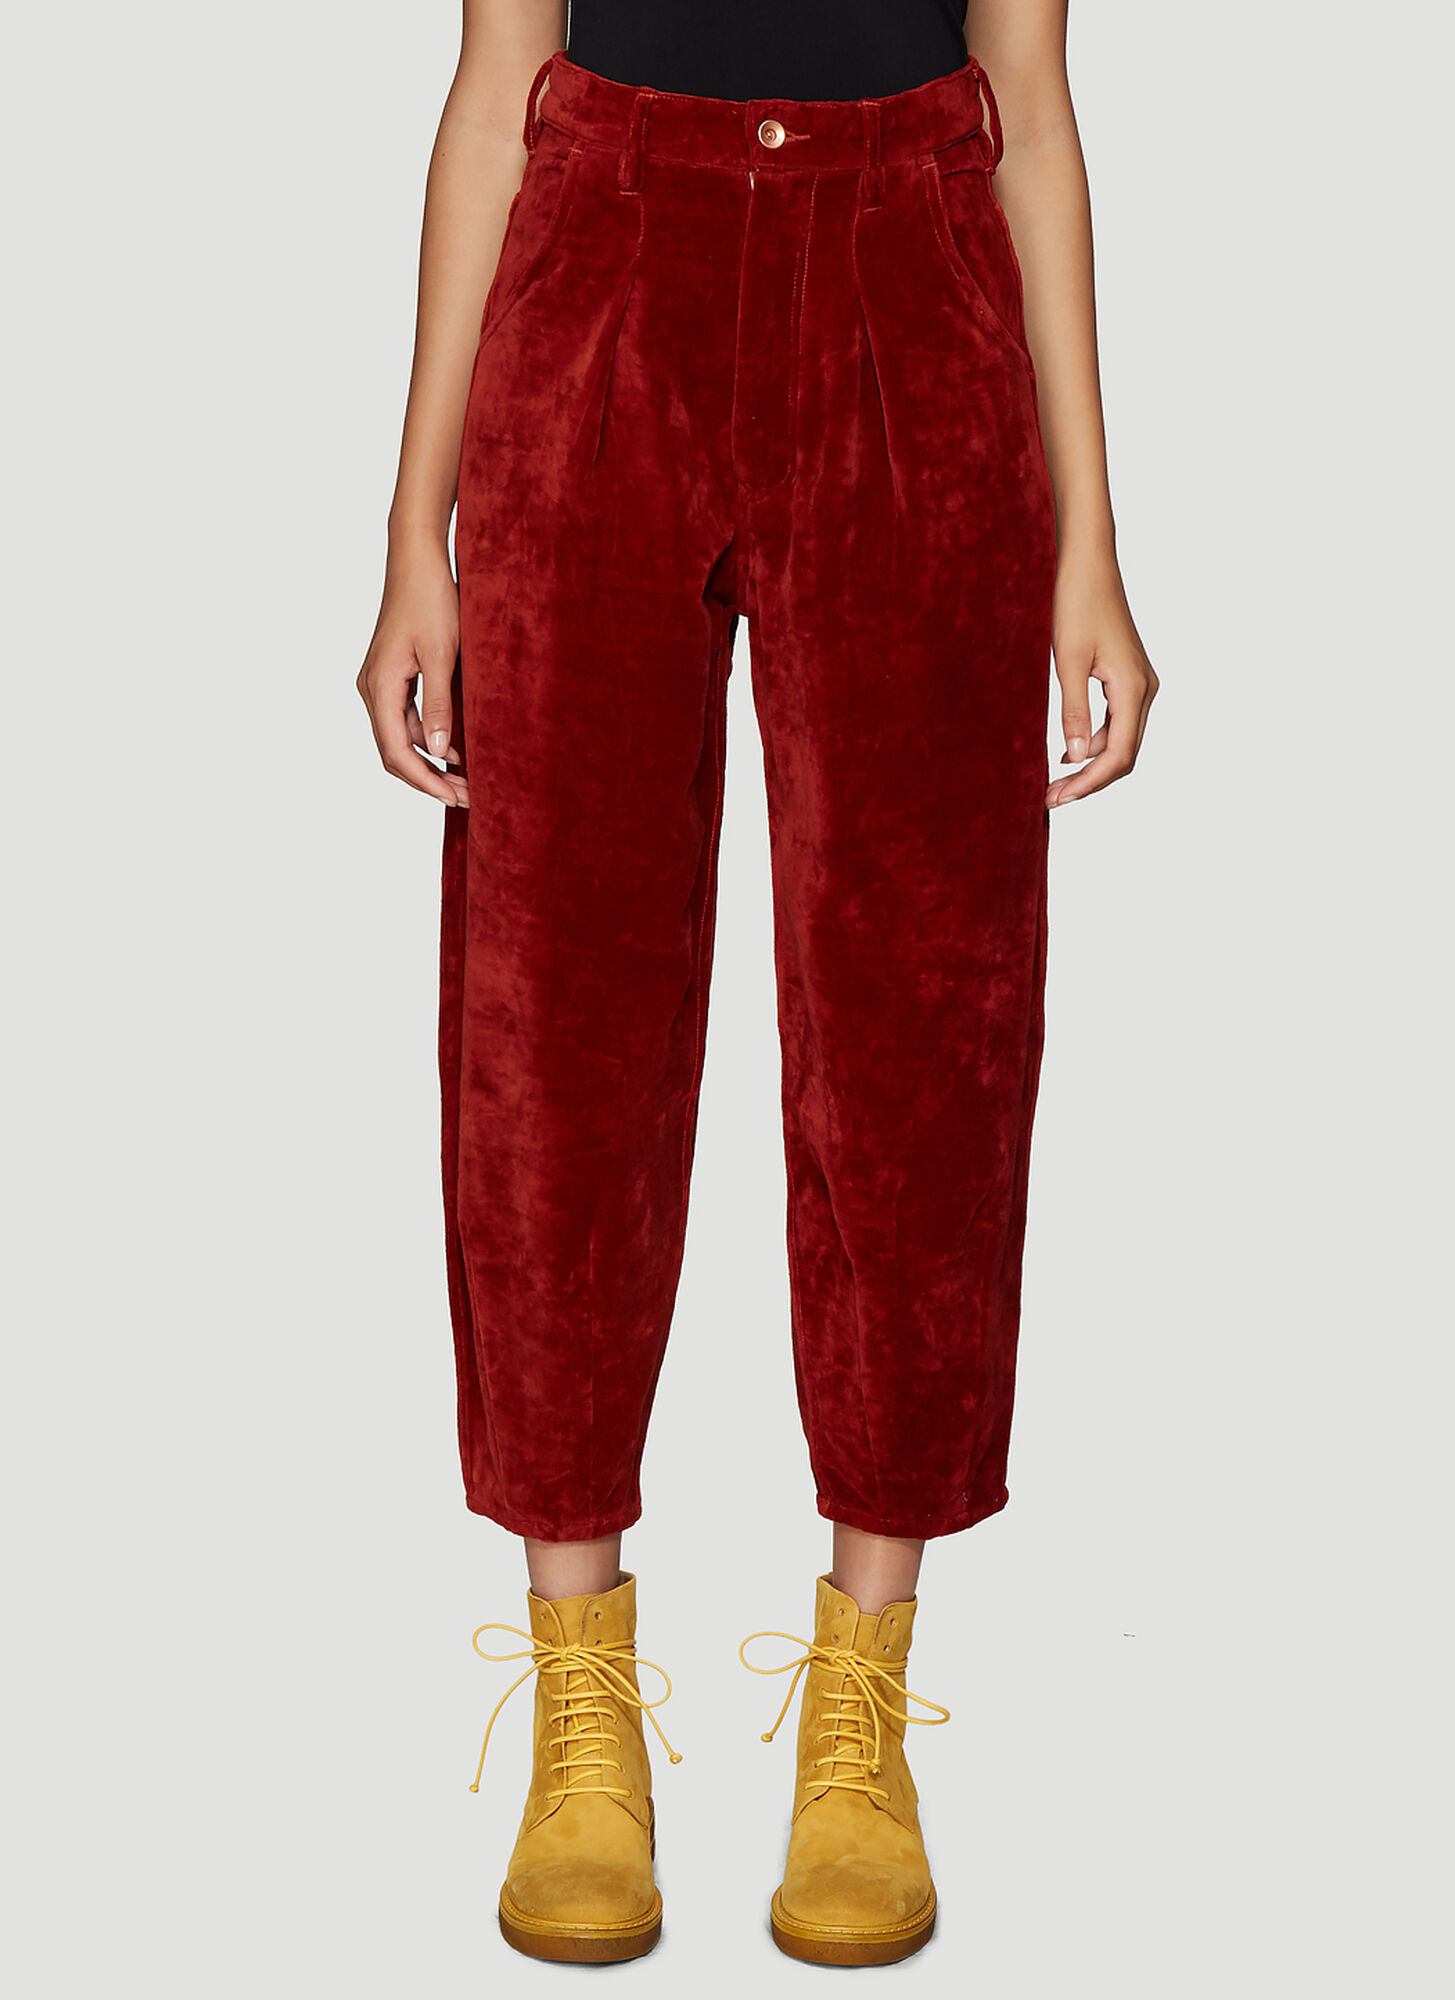 STORY mfg. Lush Jeans in Red Velvet